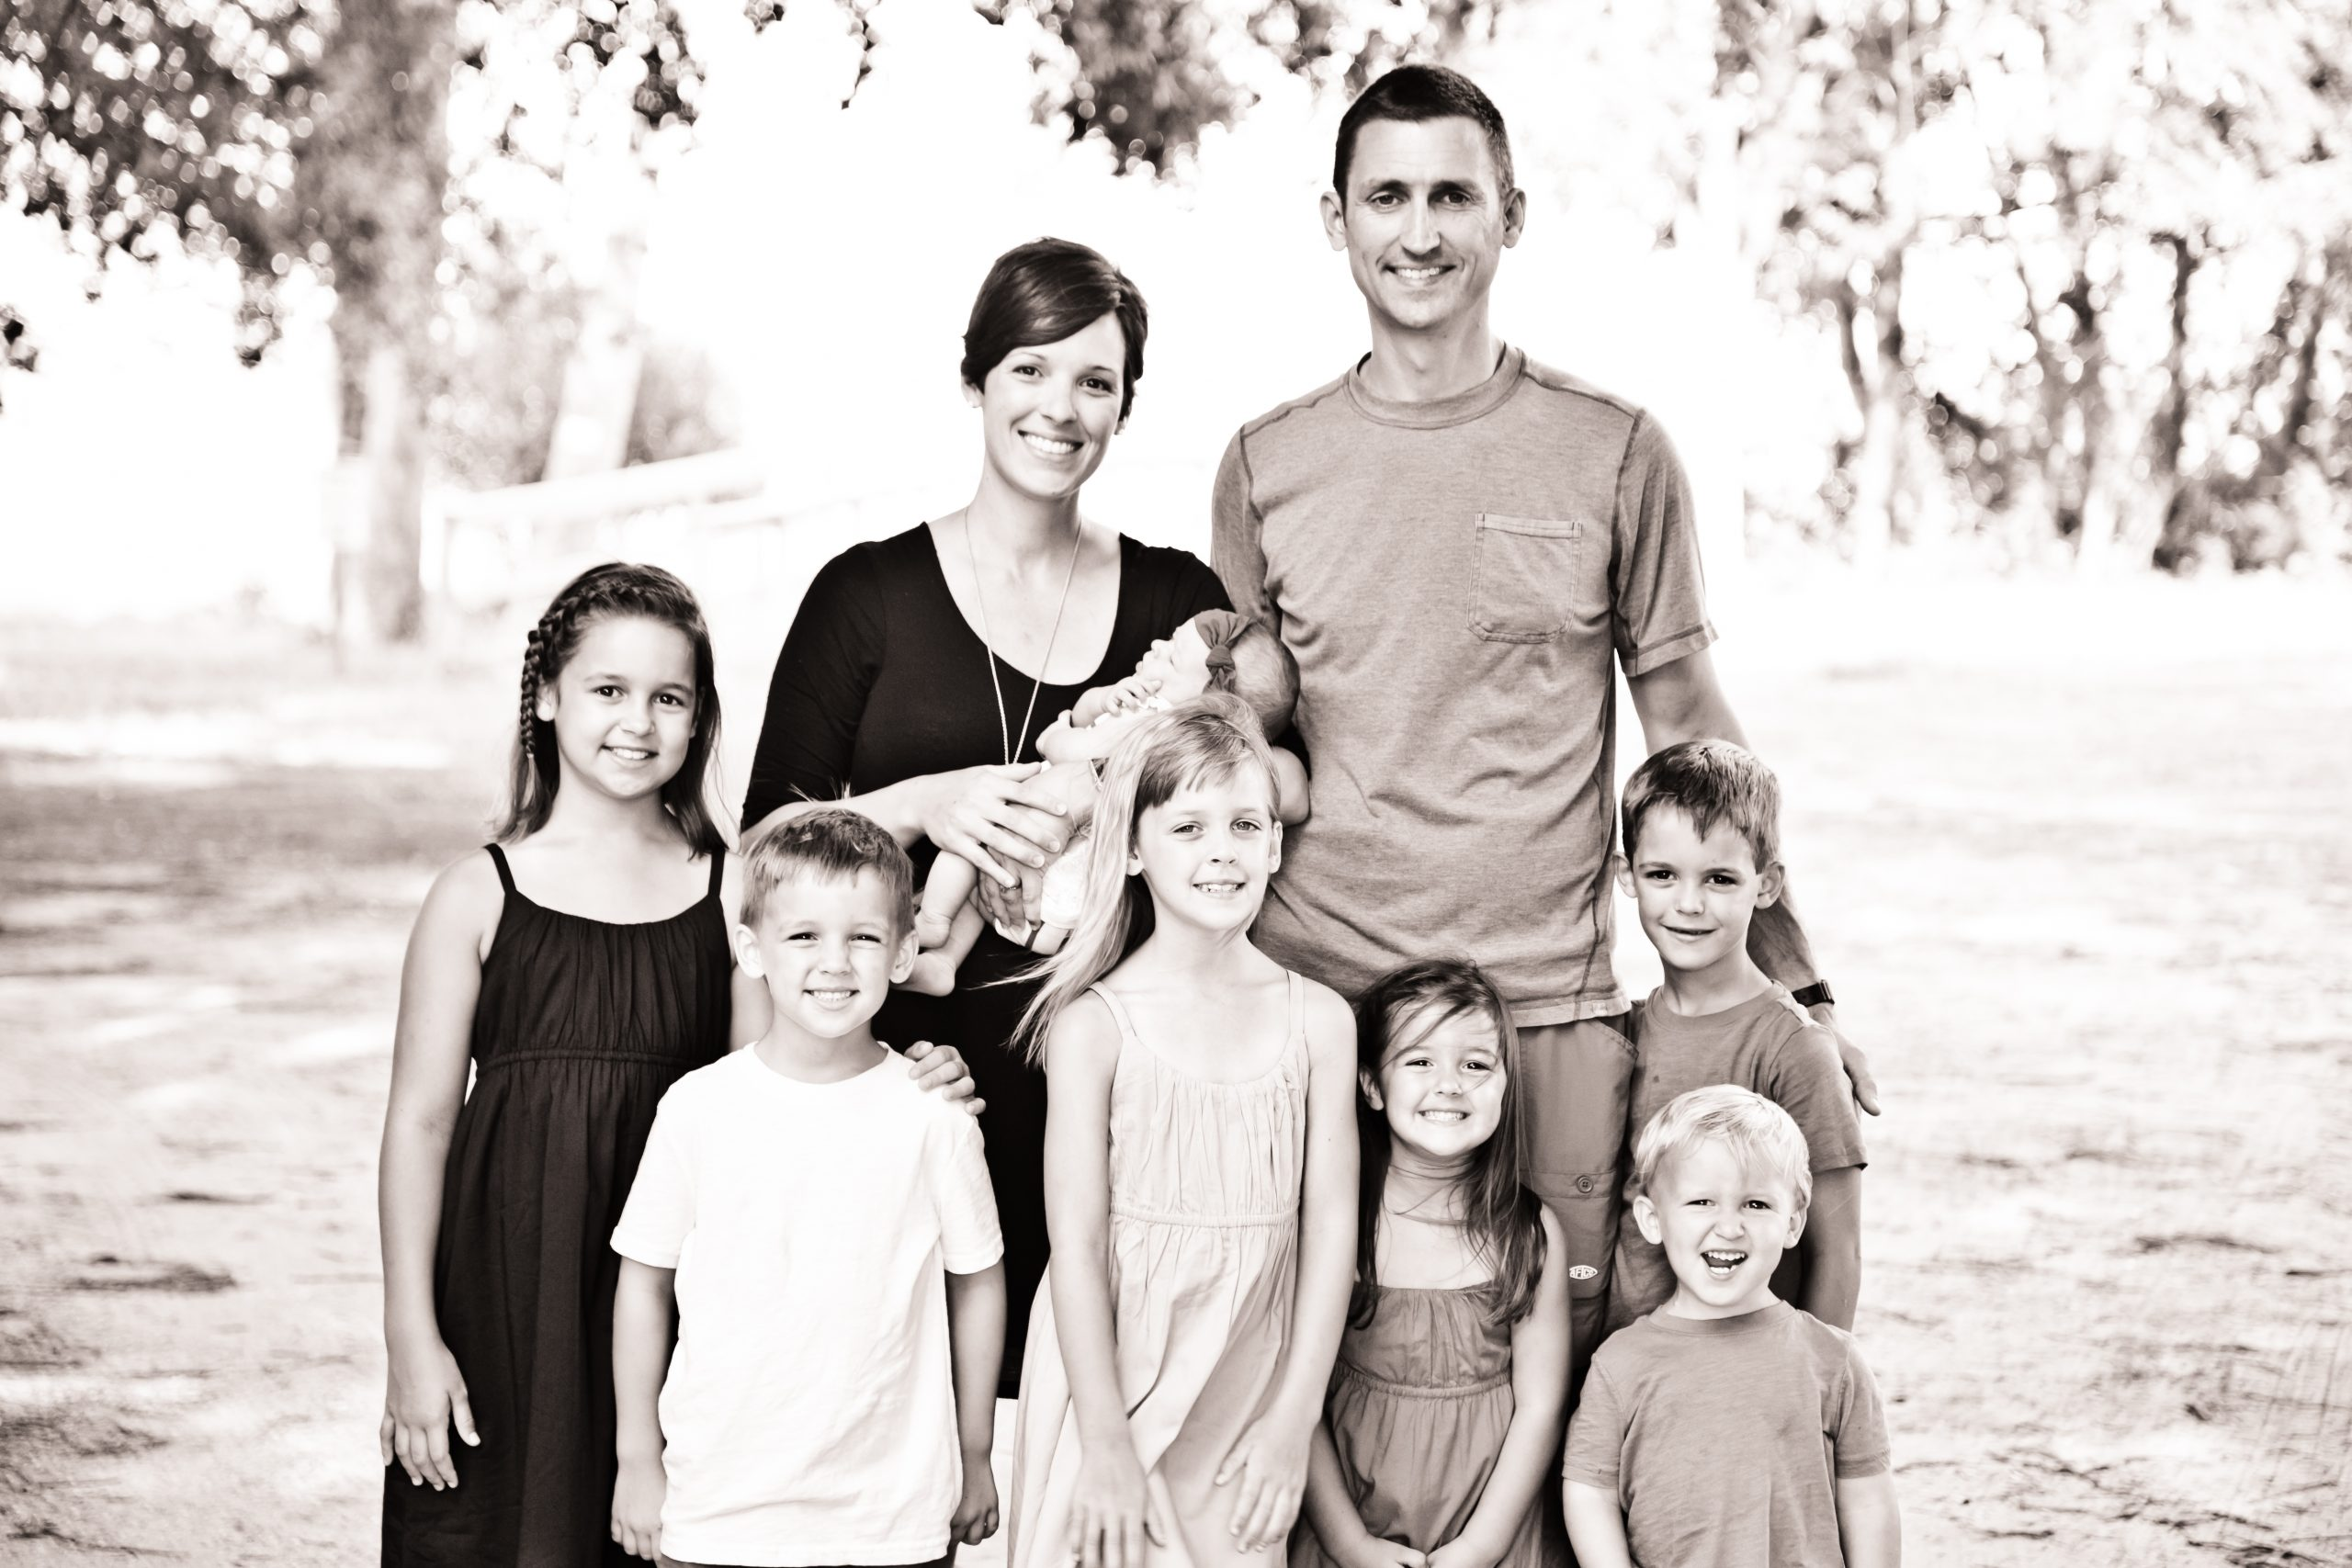 Shay Gregorie, Associate Pastor and Family